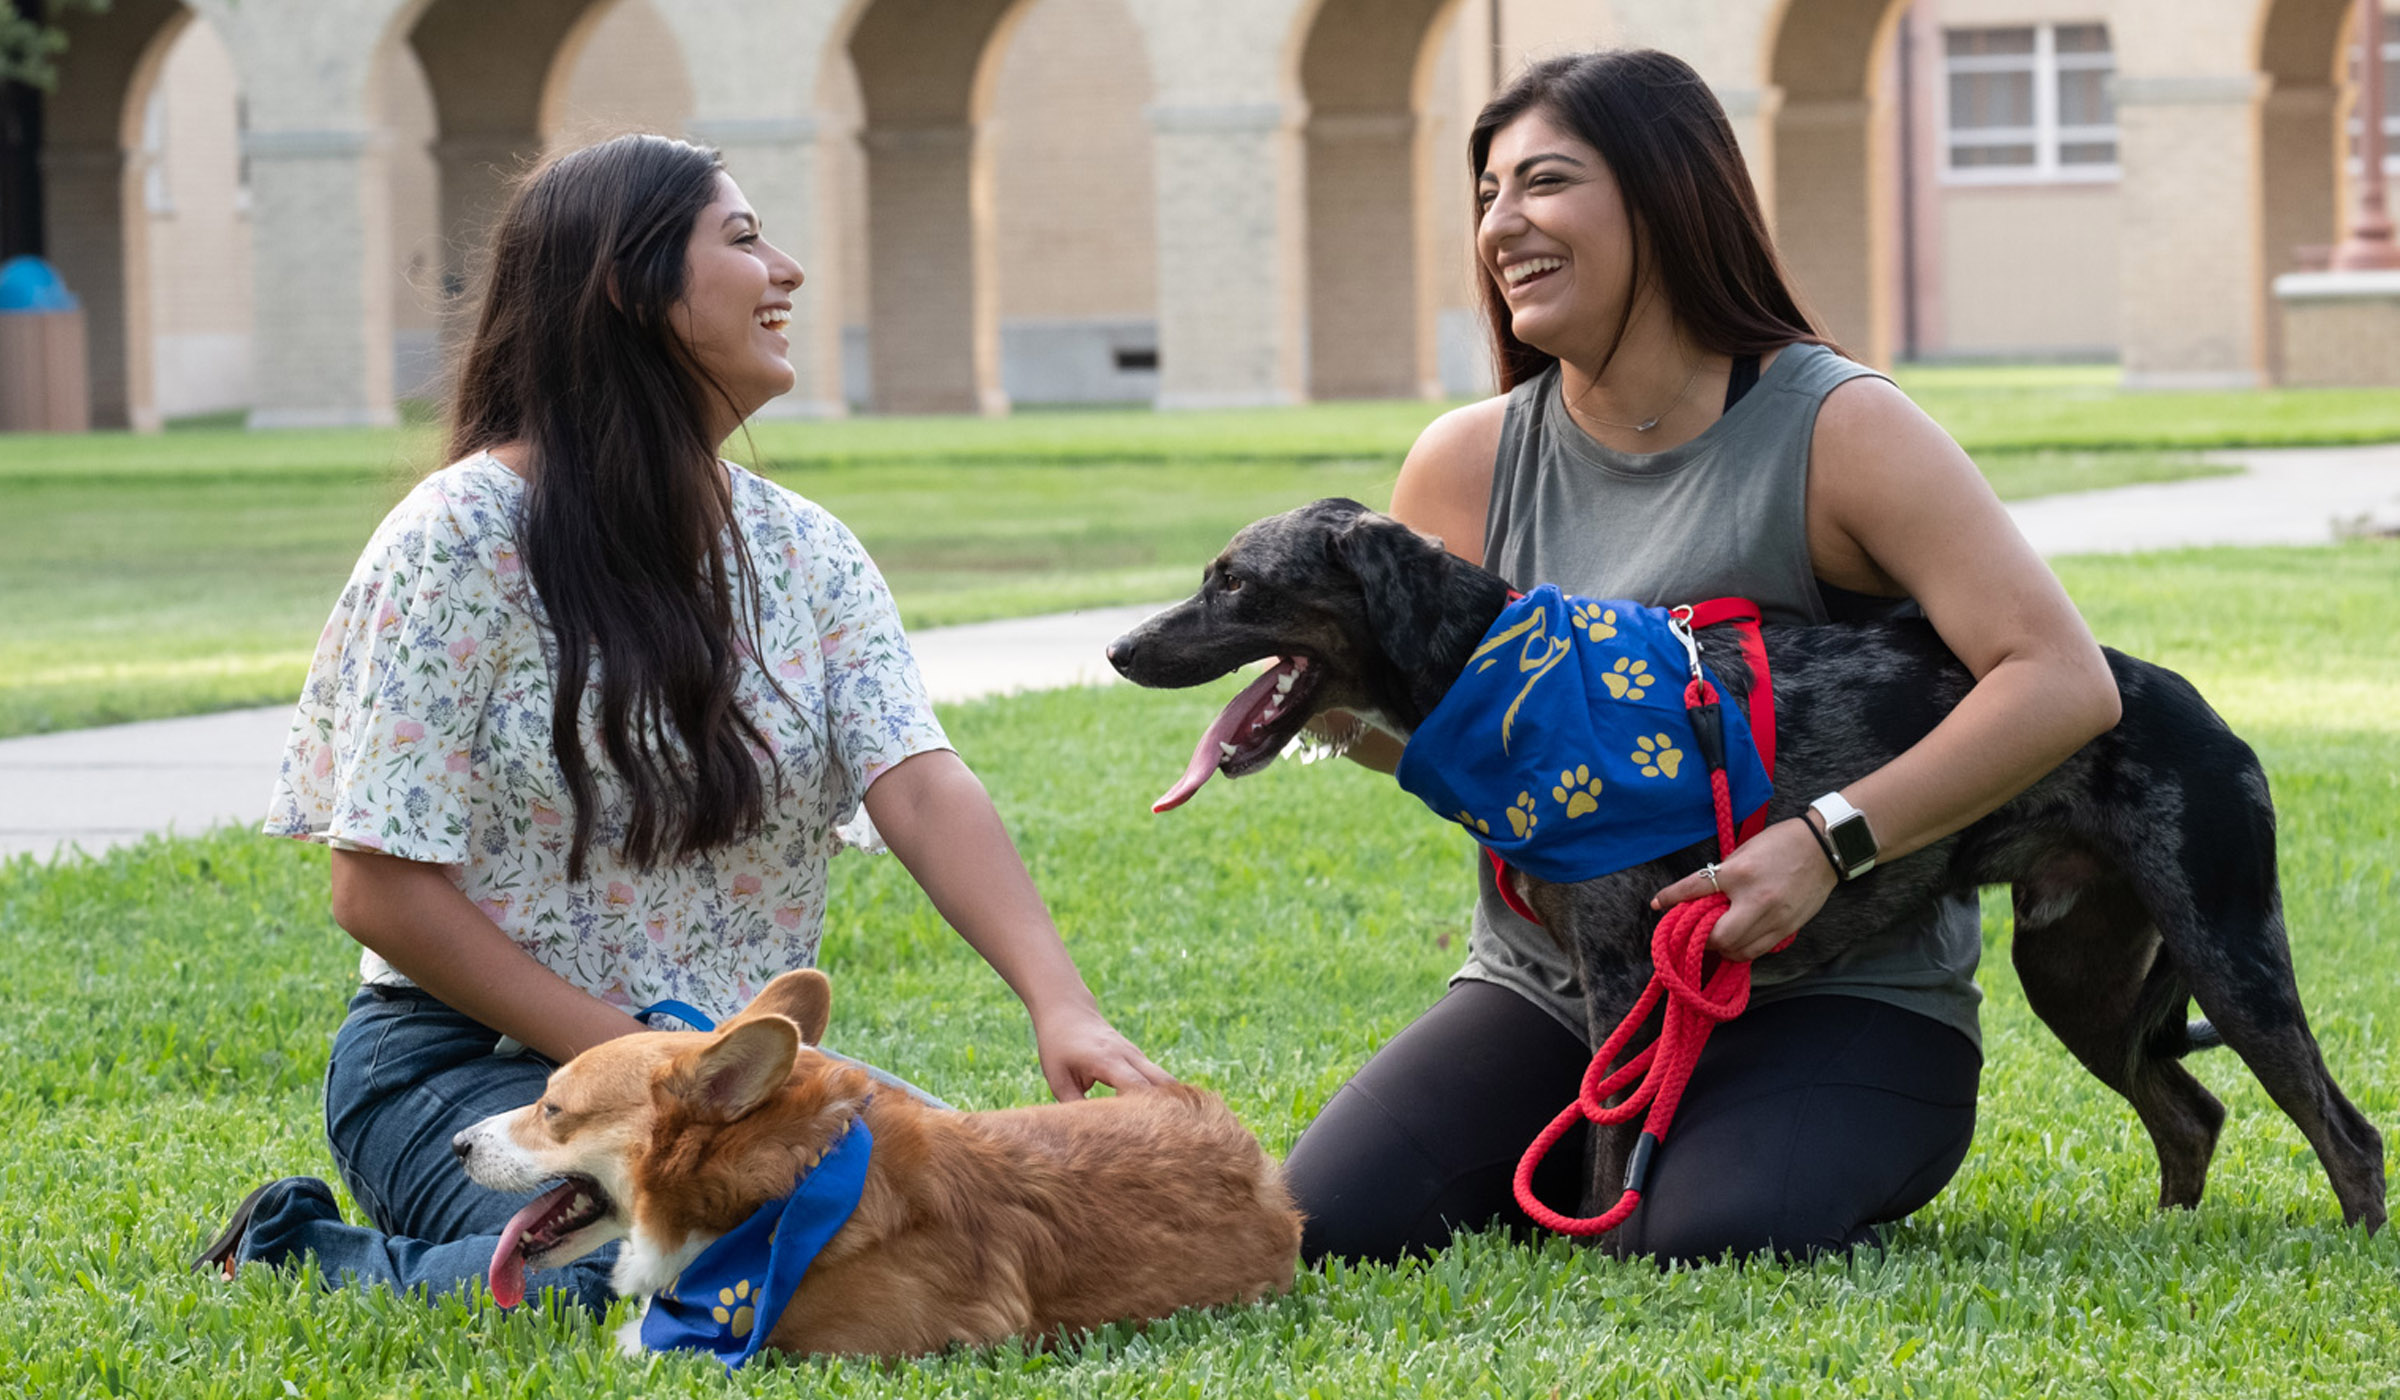 Two students with their dogs laughing